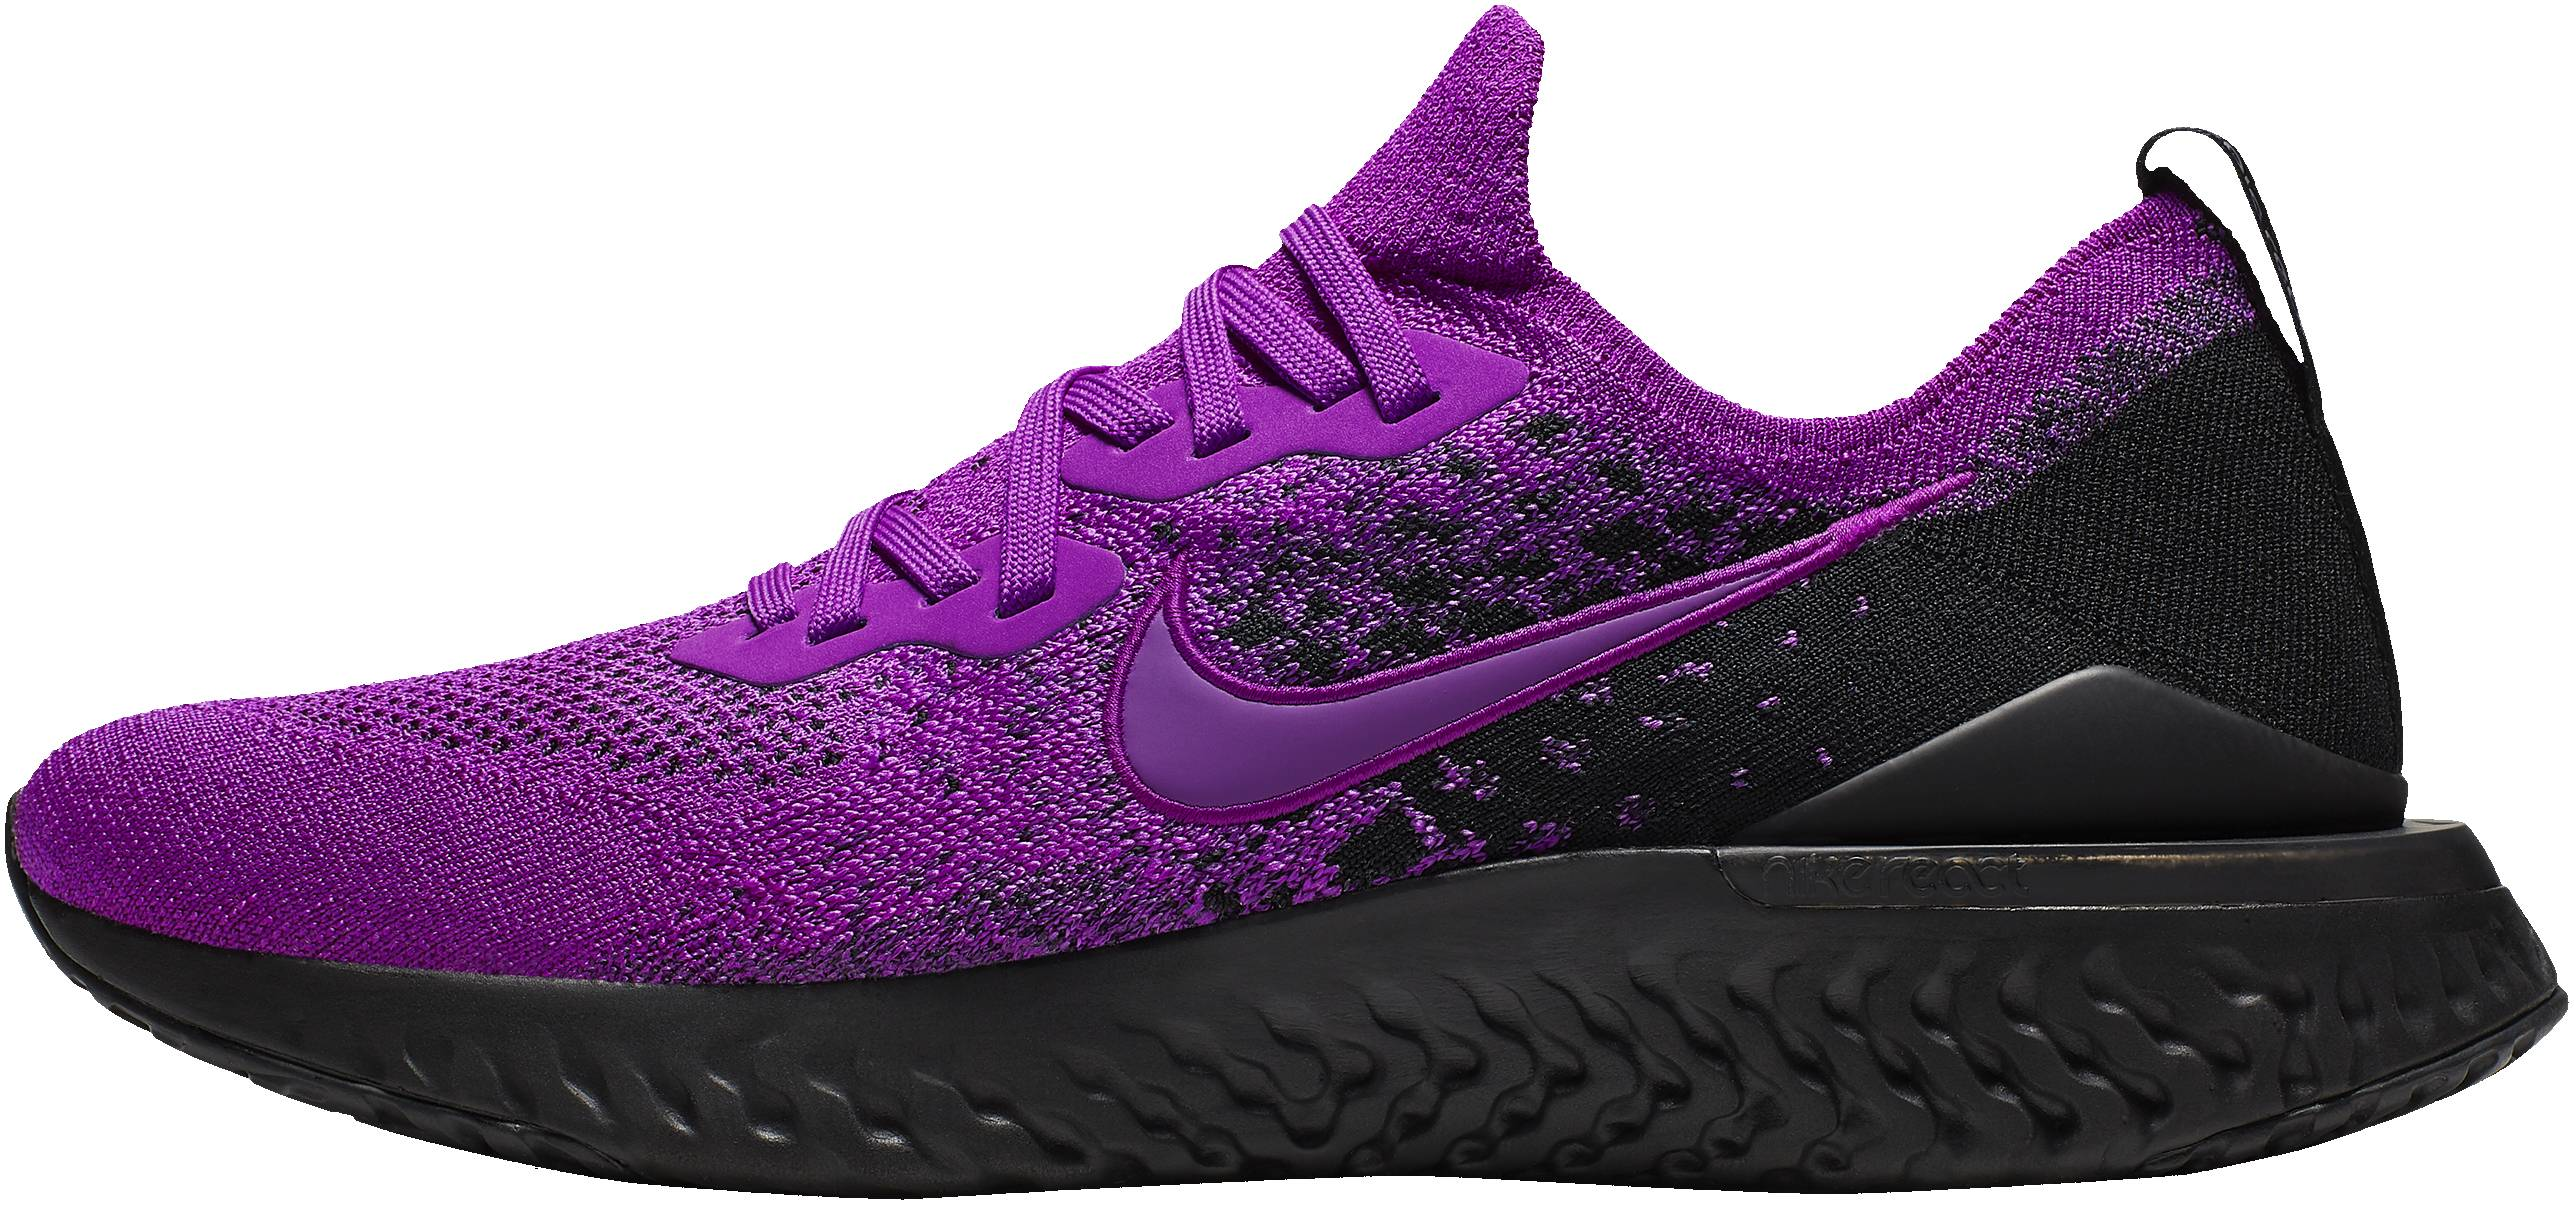 Save 43% on Purple Running Shoes (76